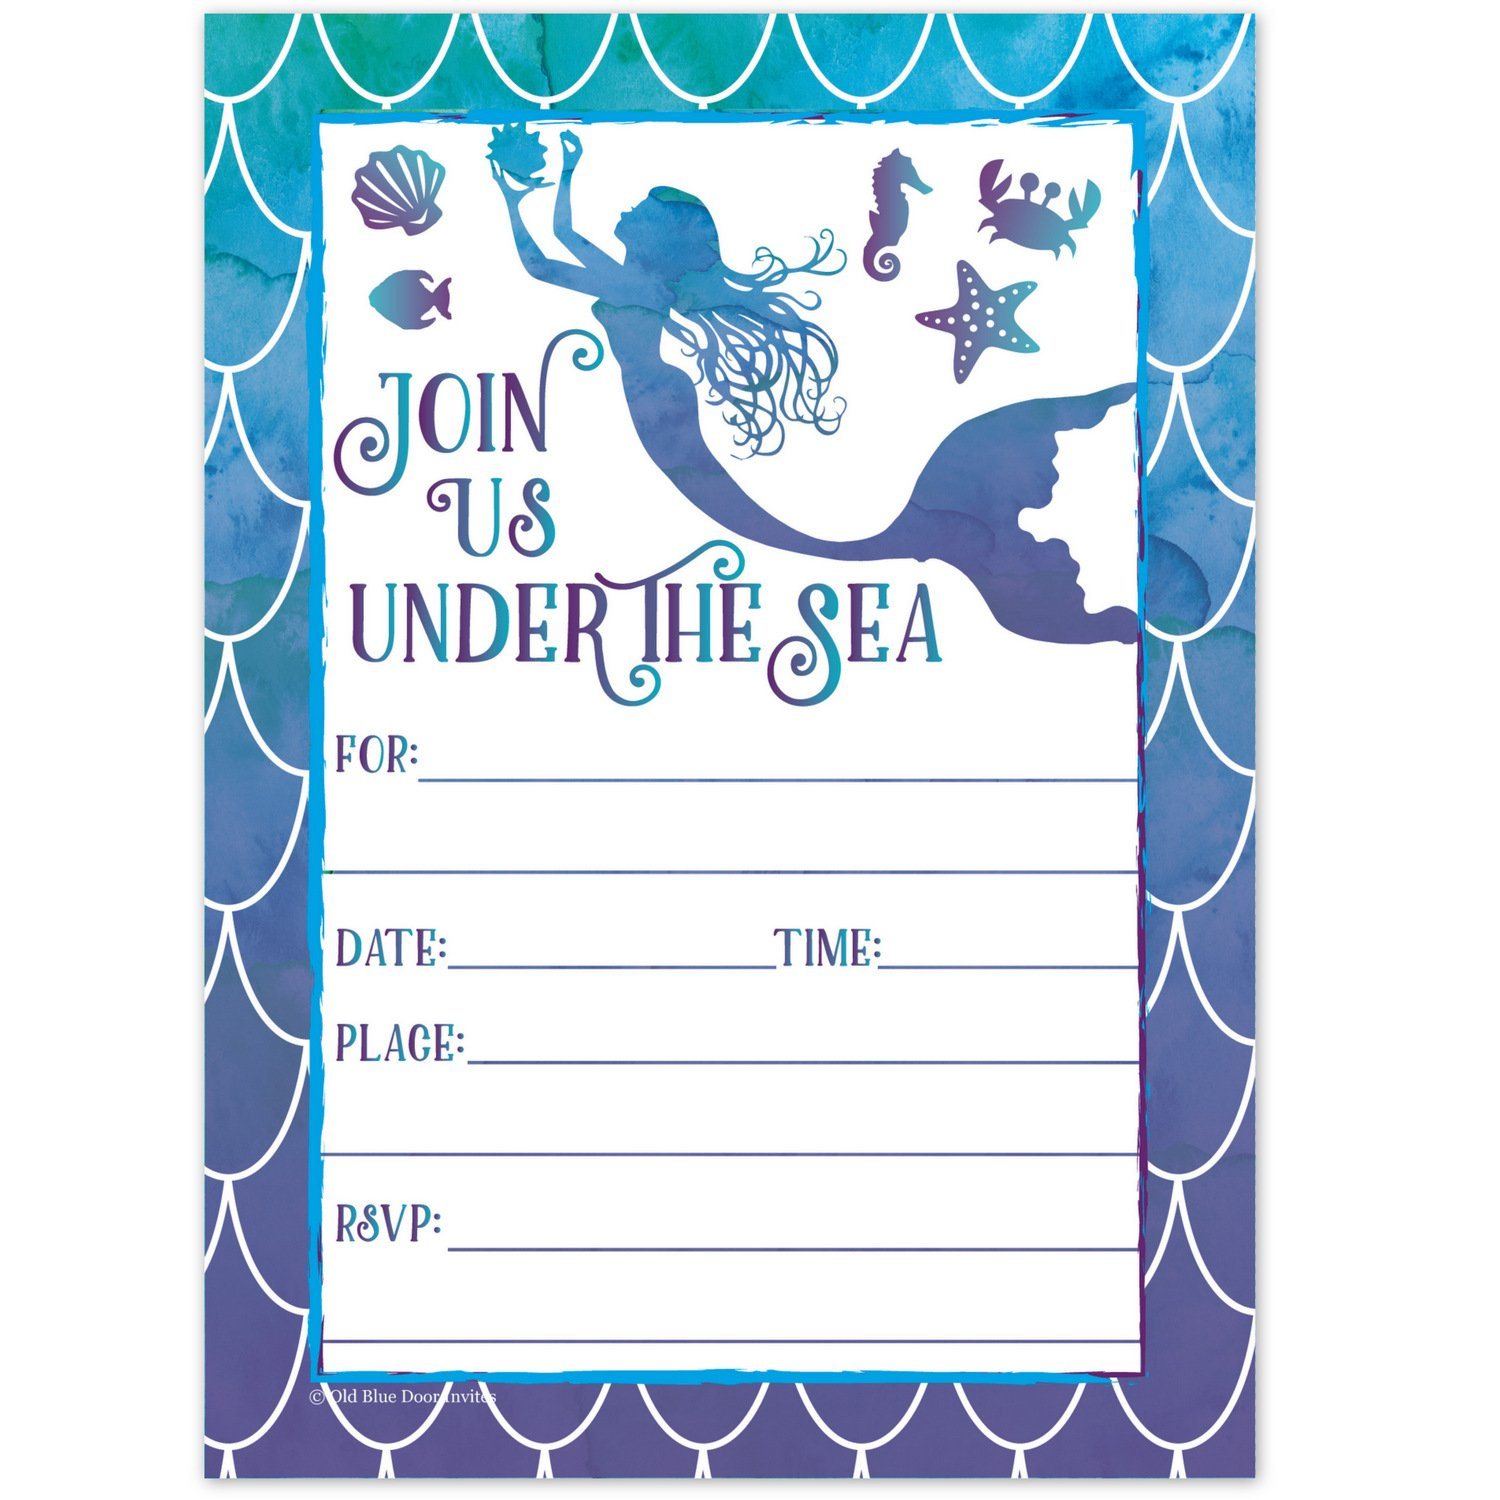 Mermaid Watercolor Birthday Party Invitations for Girls - Summer Pool Party Kids Under the Sea Invites - (20 Count with Envelopes) by Old Blue Door Invites